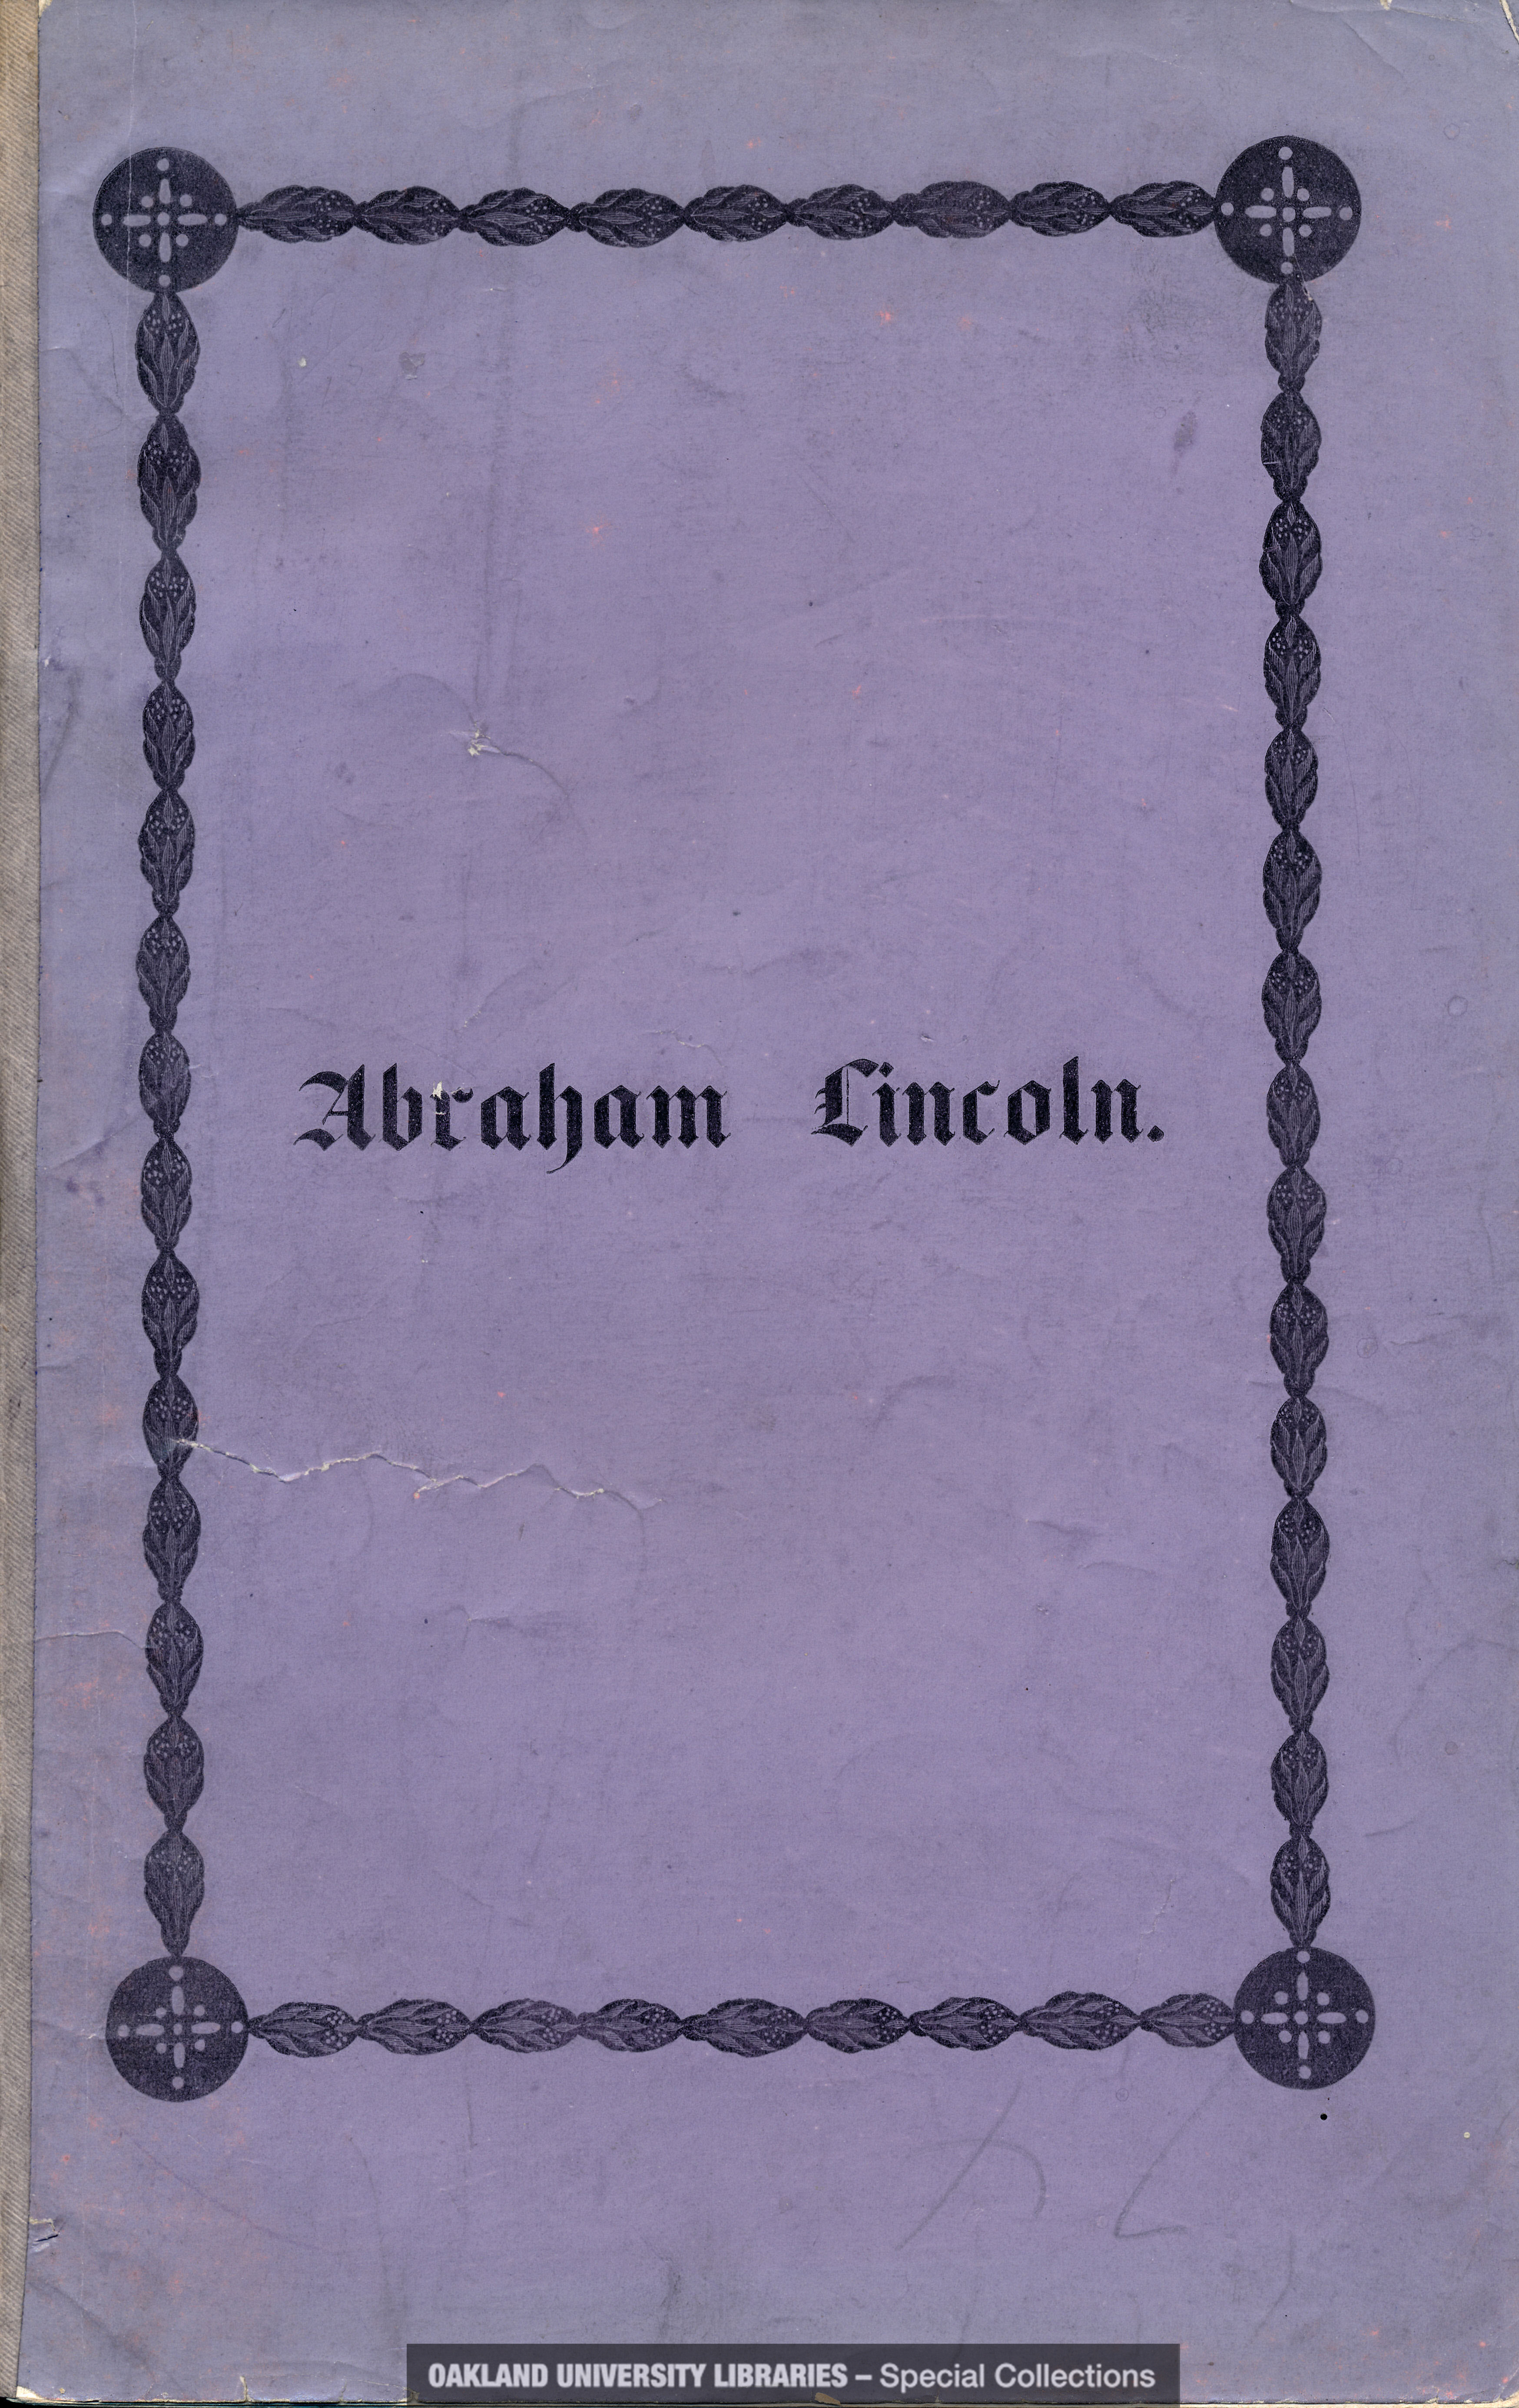 Abraham Lincoln. An Horatian Ode